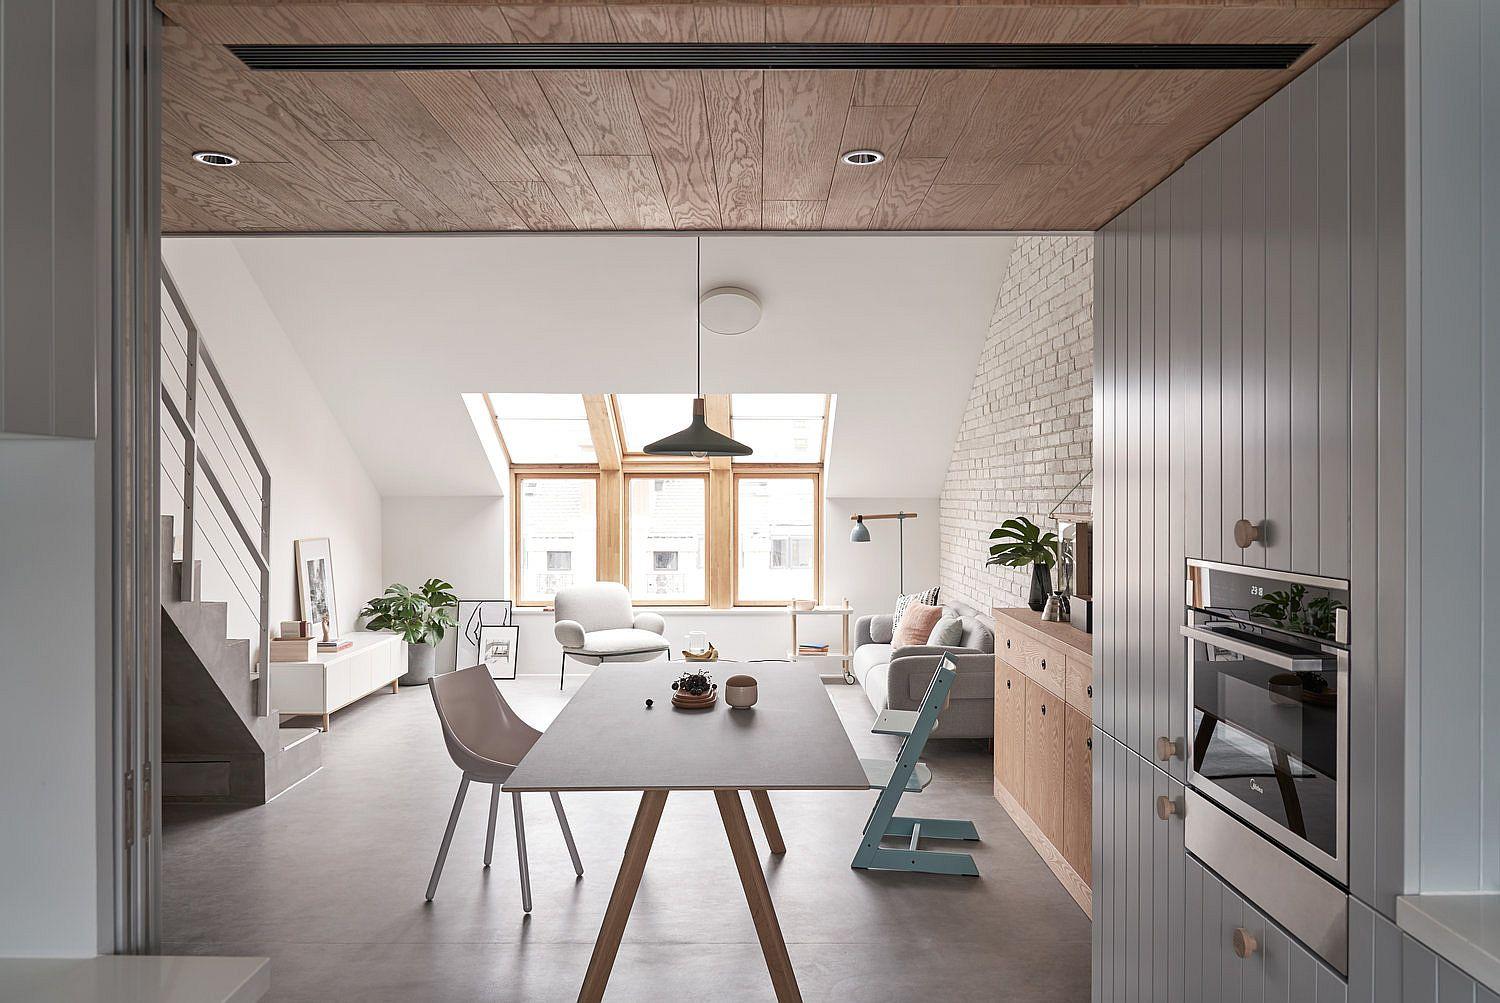 Dining area of the space-savvy Chinese apartment